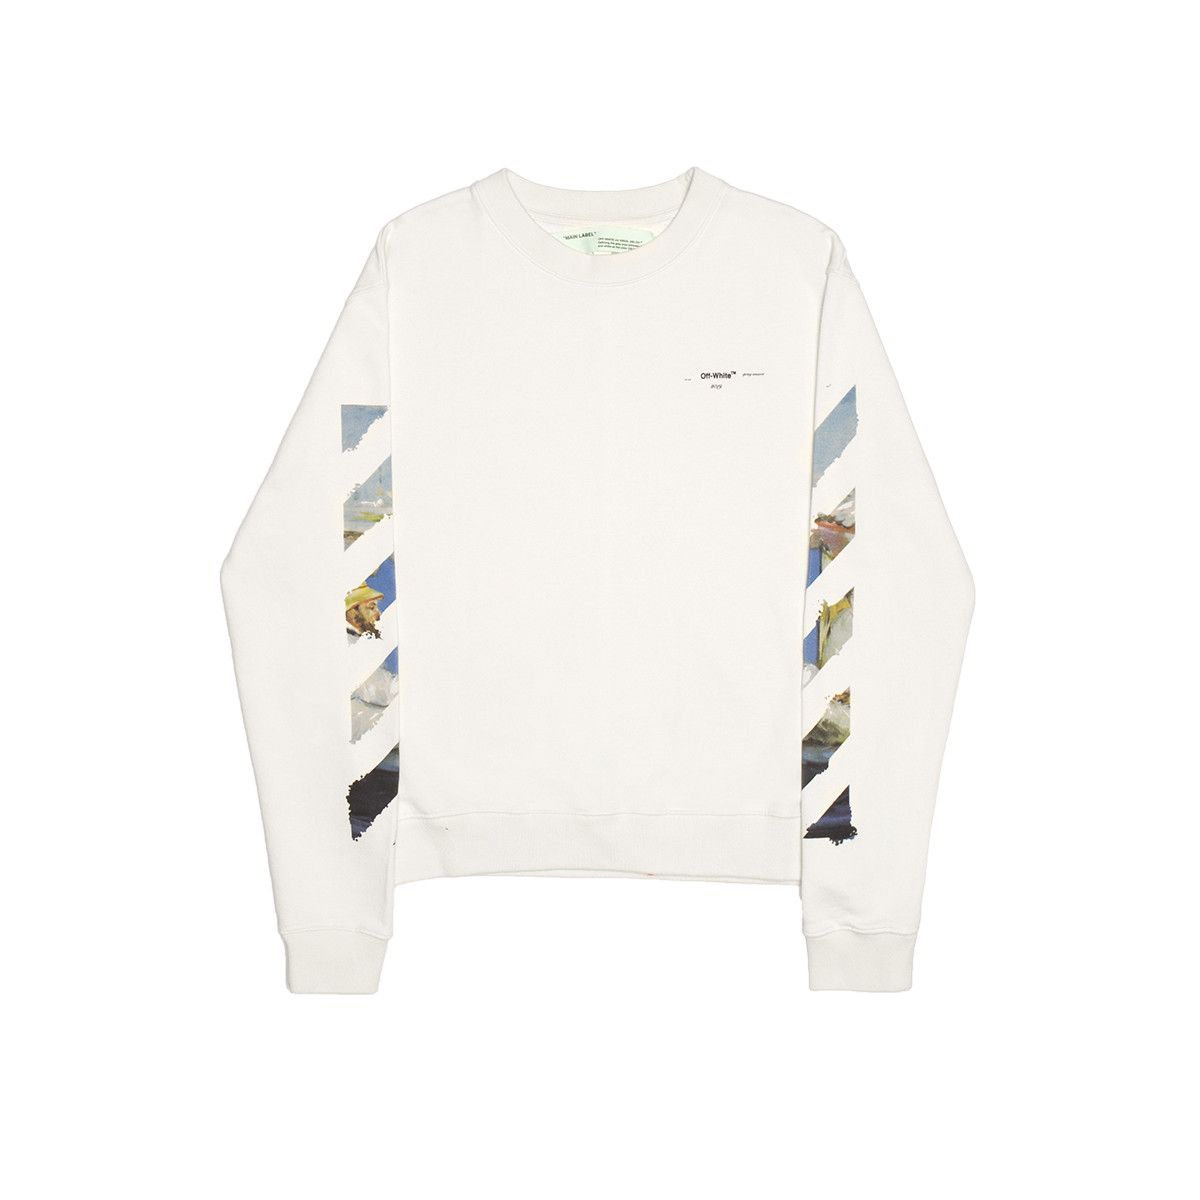 a191880c Diag Colored Arrows sweatshirt from the Pre S/S2019 Off-White c/o Virgil  Abloh collection in white